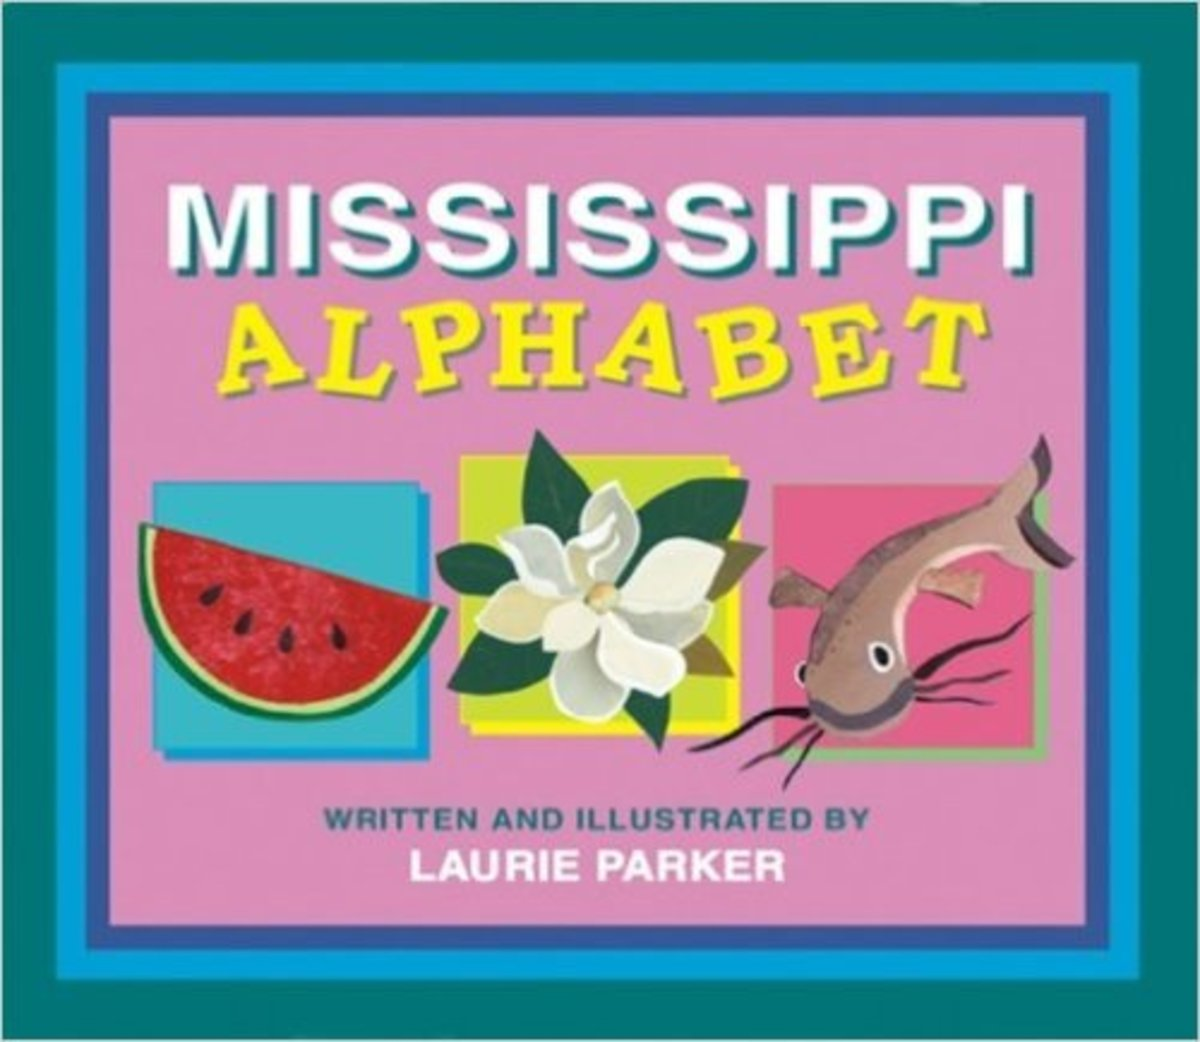 Mississippi Alphabet by Laurie Parker - Image is from amazon.com